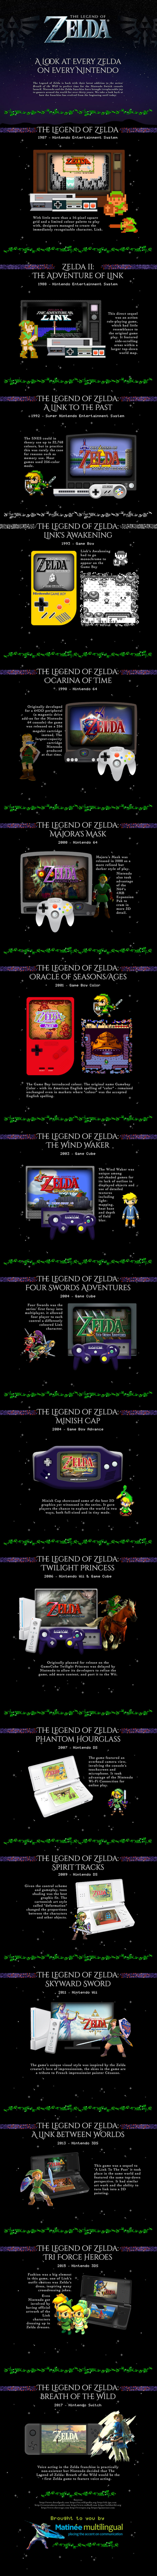 Matinée Multilingual's 'A look at every Zelda on every Nintendo' infographic.